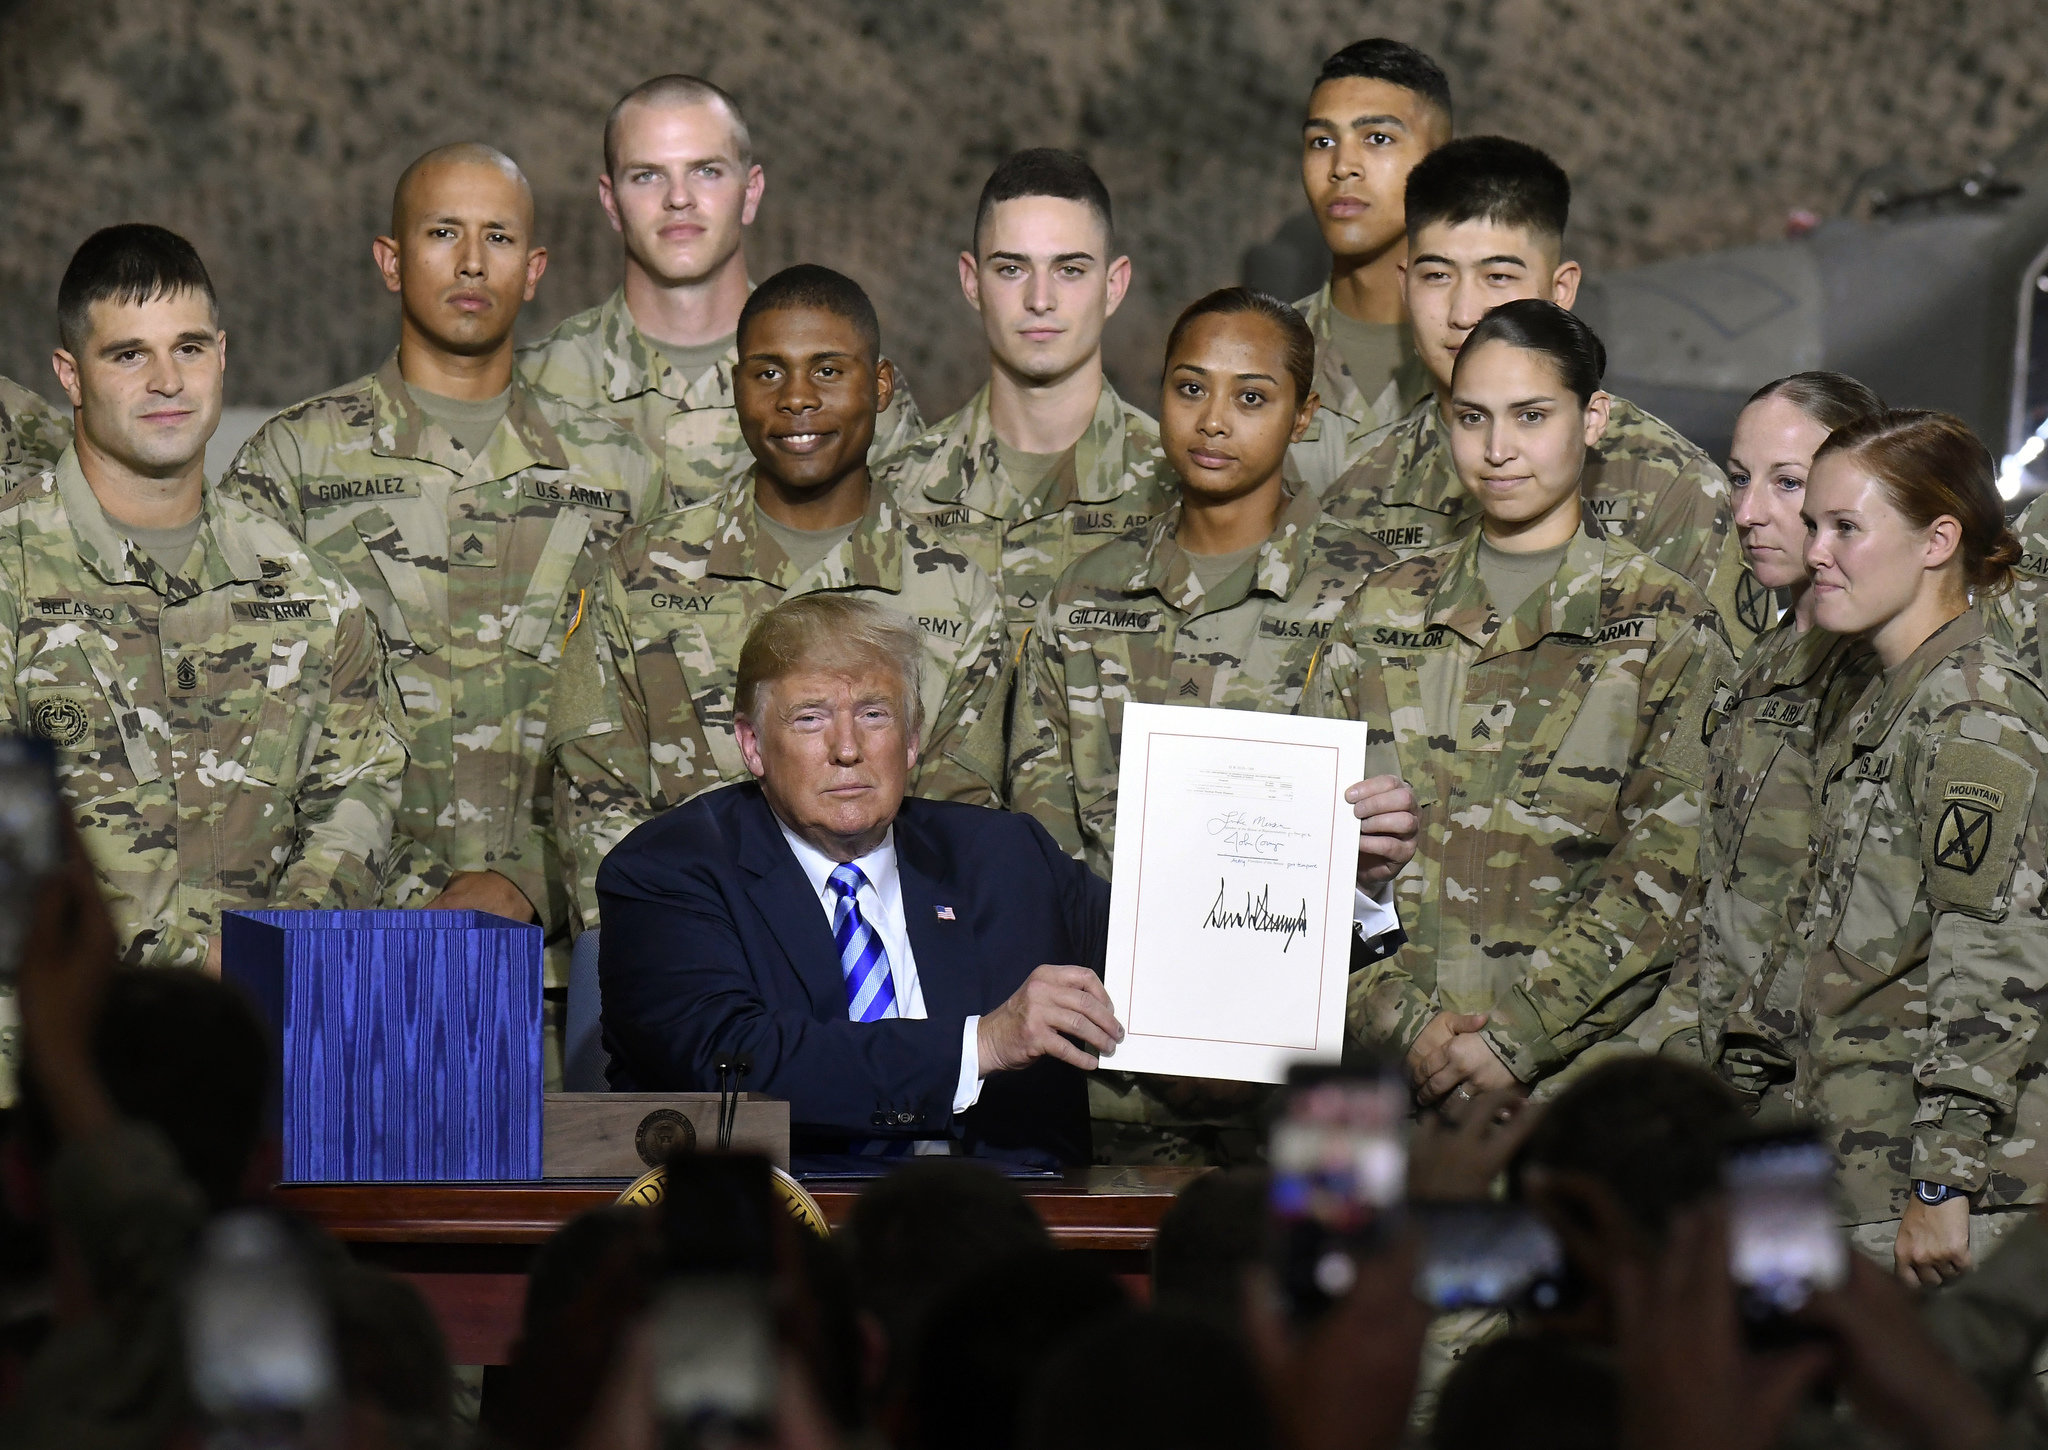 Army Fiscal Year 2019 Calendar With Trump Snubs Rival John McCain At Fort Drum Military Bill Signing